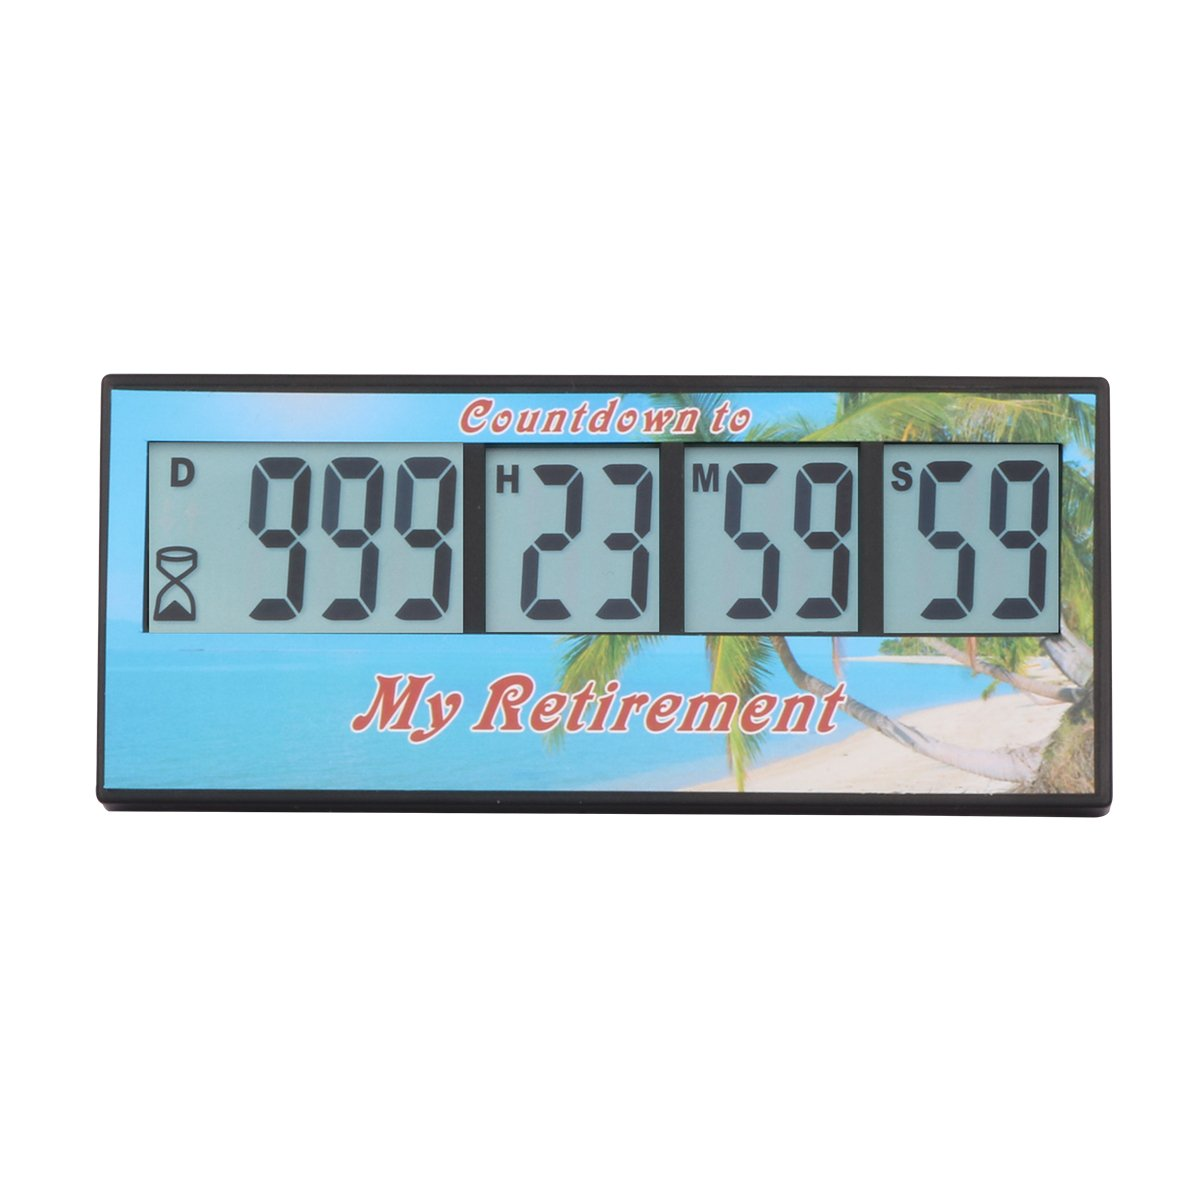 Digital Retirement Countdown Timer - AIMILAR 999 Days Count Down Timer (3-Year Warranty)